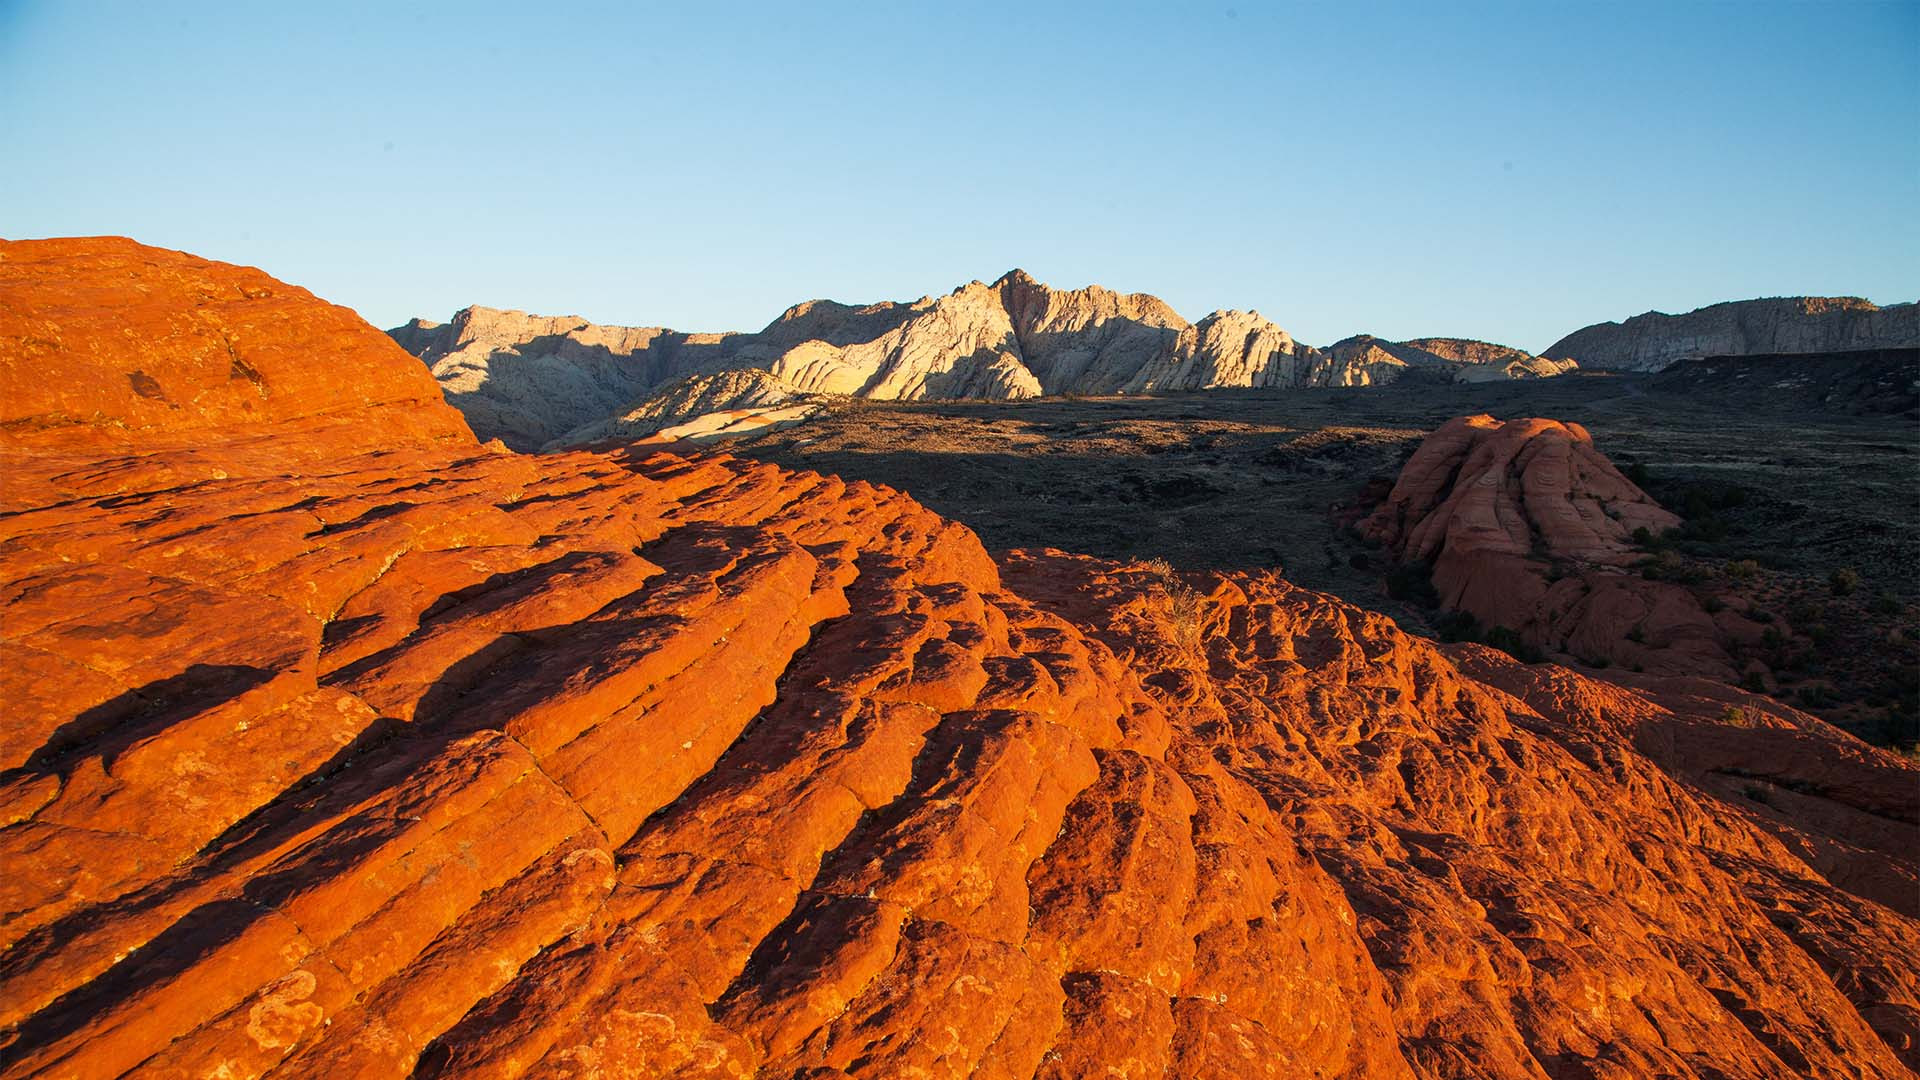 Ancient lava flows and sand dunes in Snow Canyon State Park, Utah